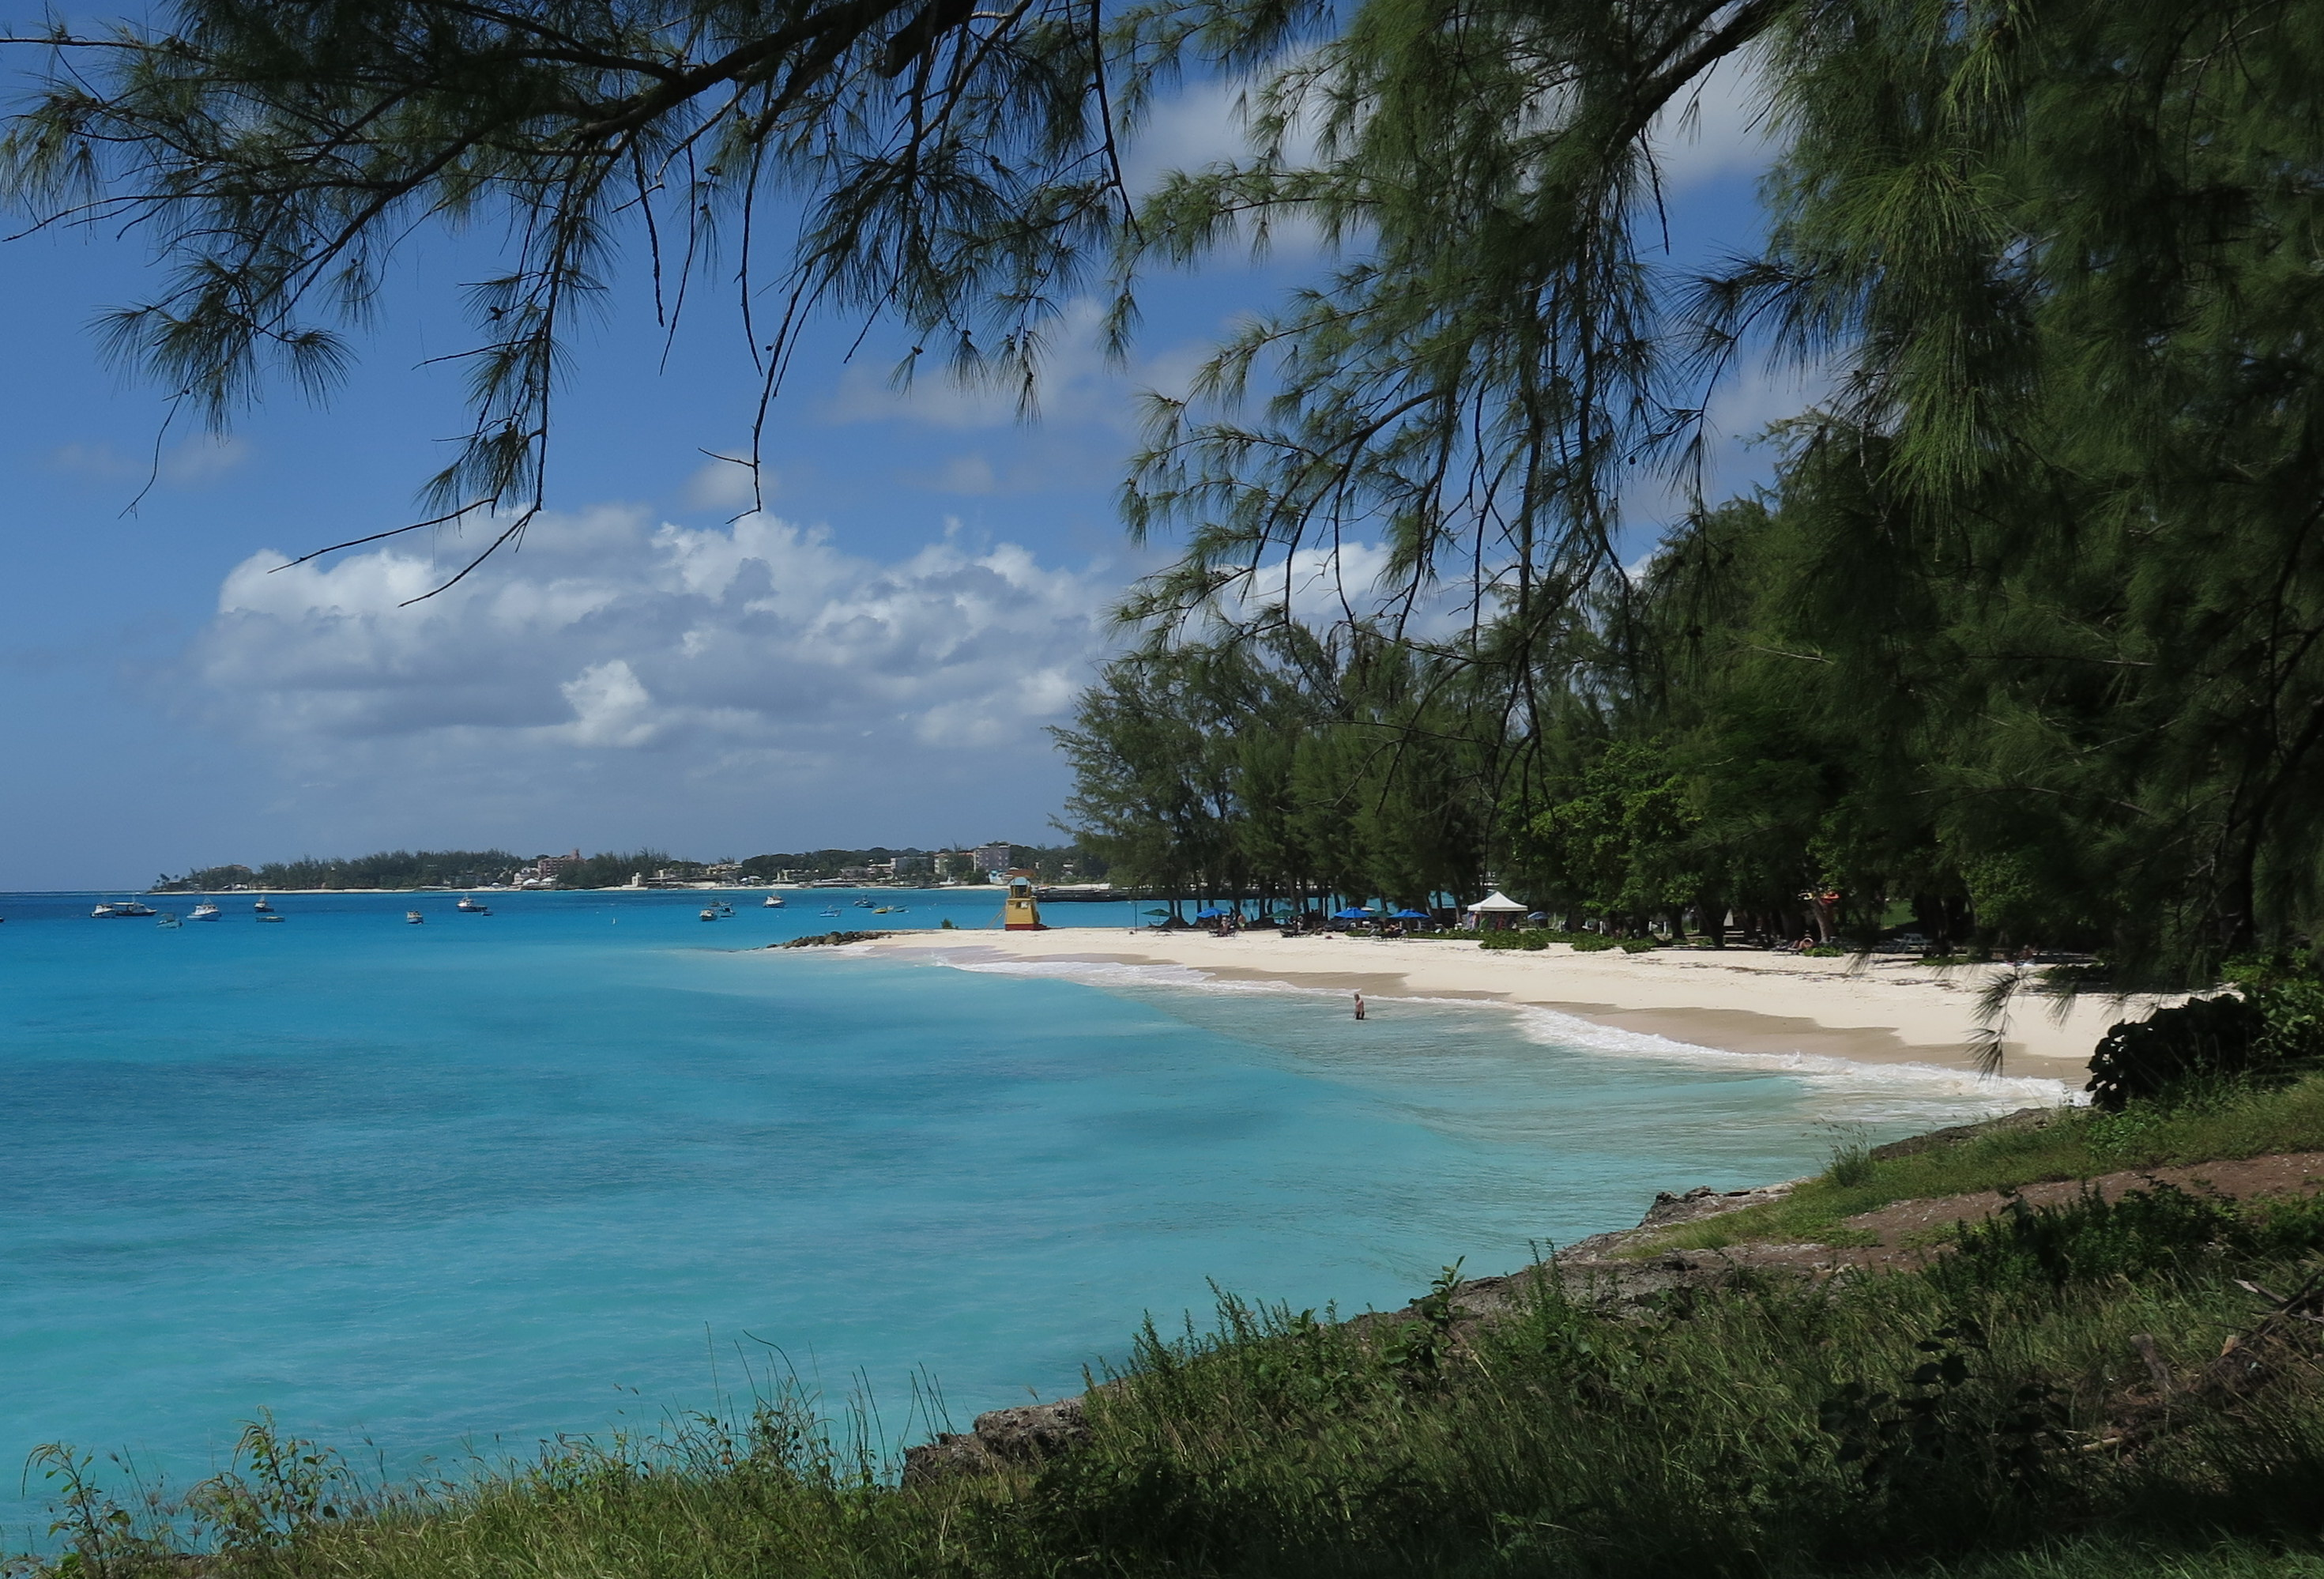 Miami Beach is a fantastic spot on the south coast of Barbados. JIM BYERS PHOTO